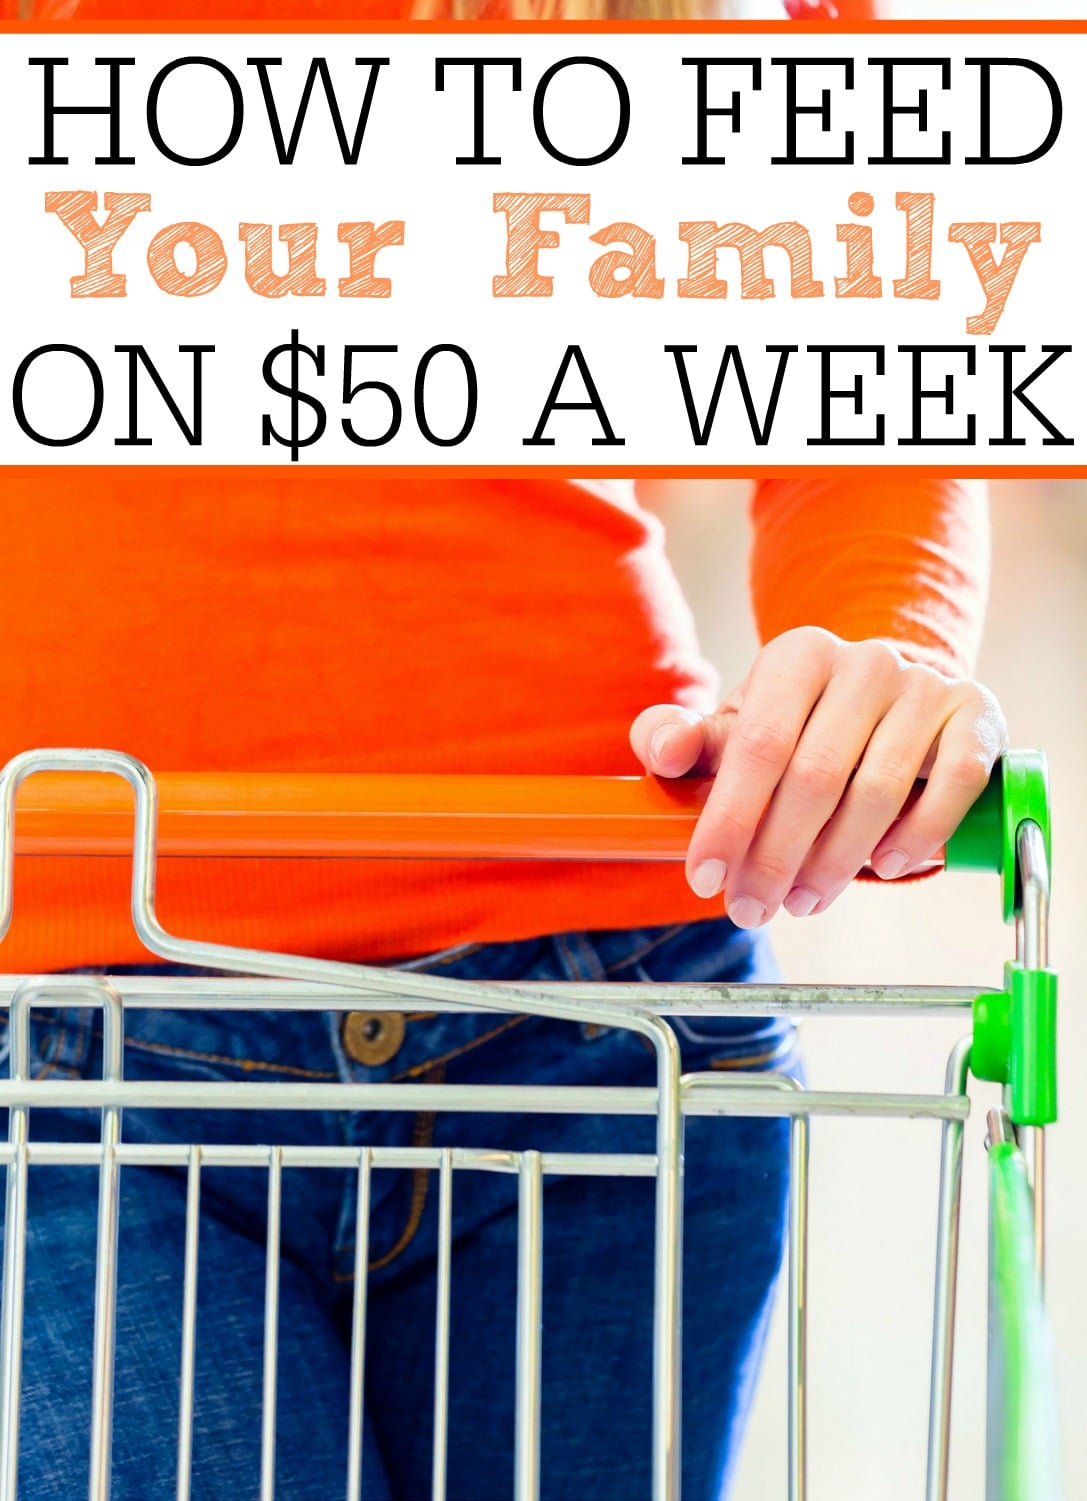 See how to spend $50 a week on groceries! This family does it and often goes BELOW $50 a week. With these simple tips you can be saving your family more.